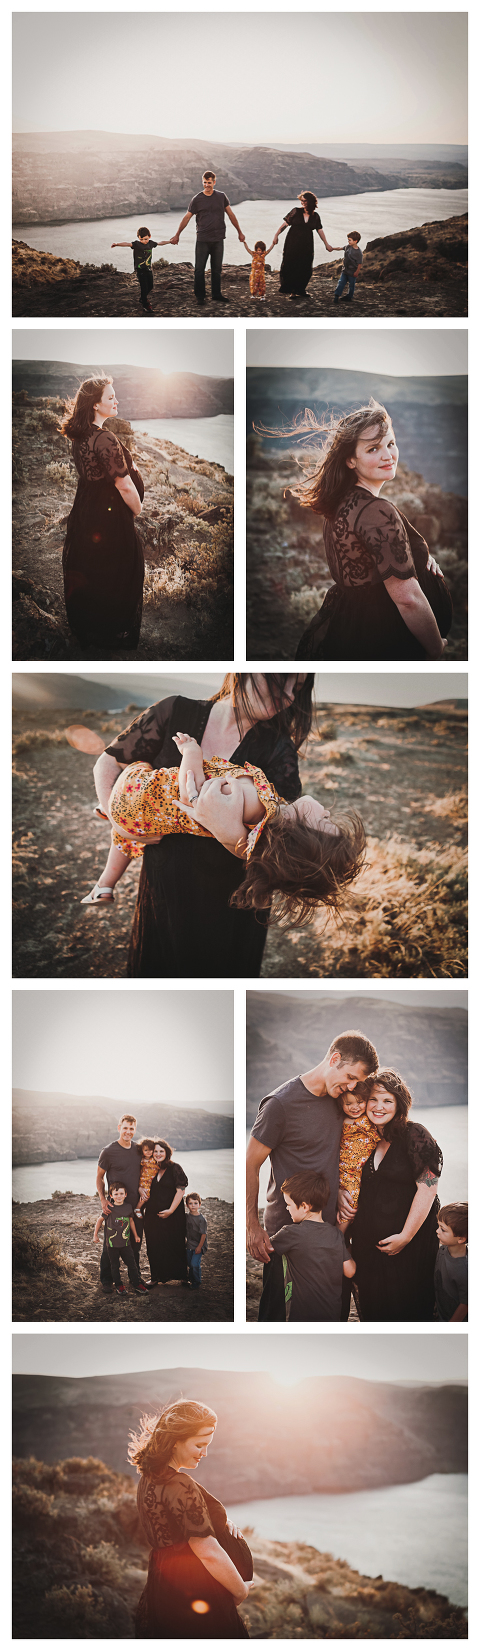 Baby Elek-lifestyle newborn photography by Hailey Haberman in Ellensburg WA